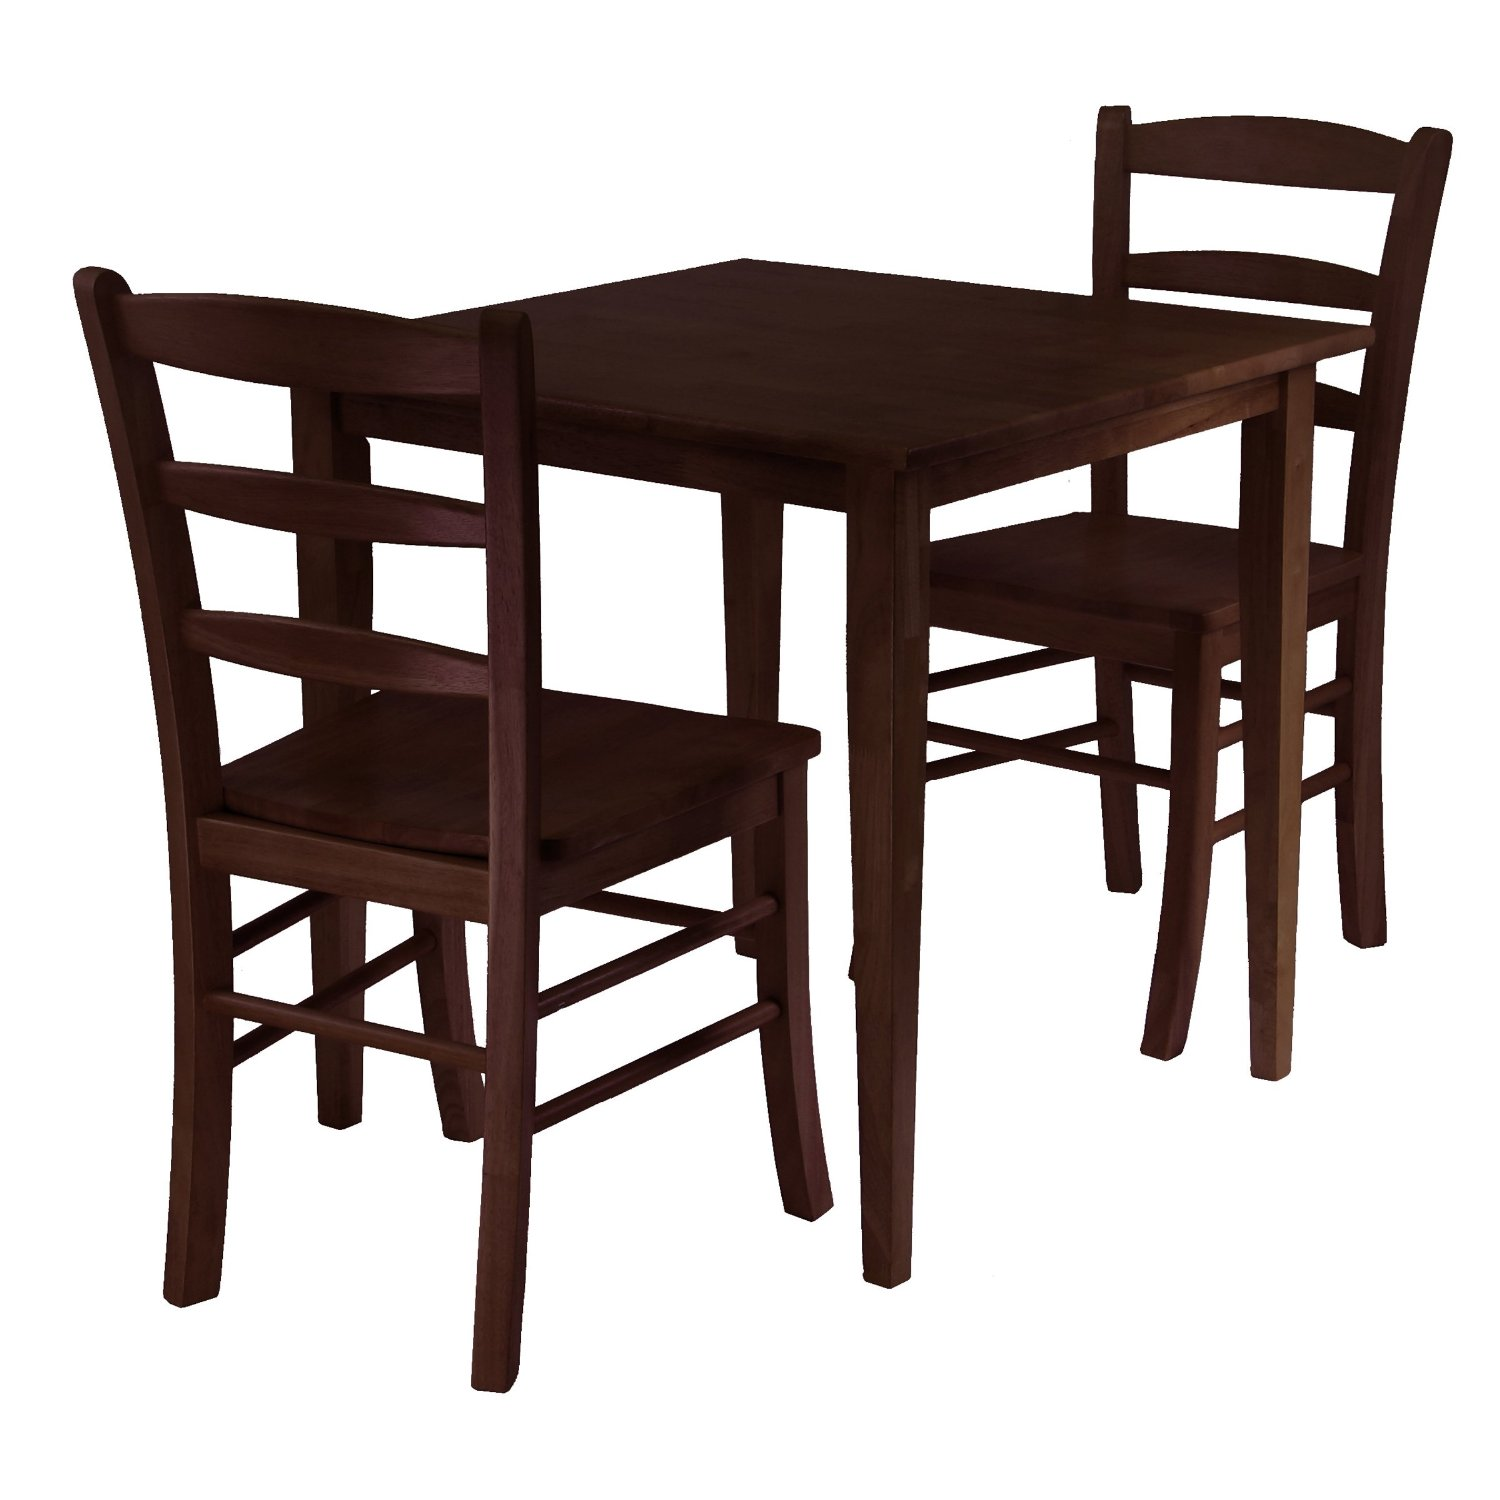 Kitchen Table And Chair Sets Cheap: Small Dinette Set Design